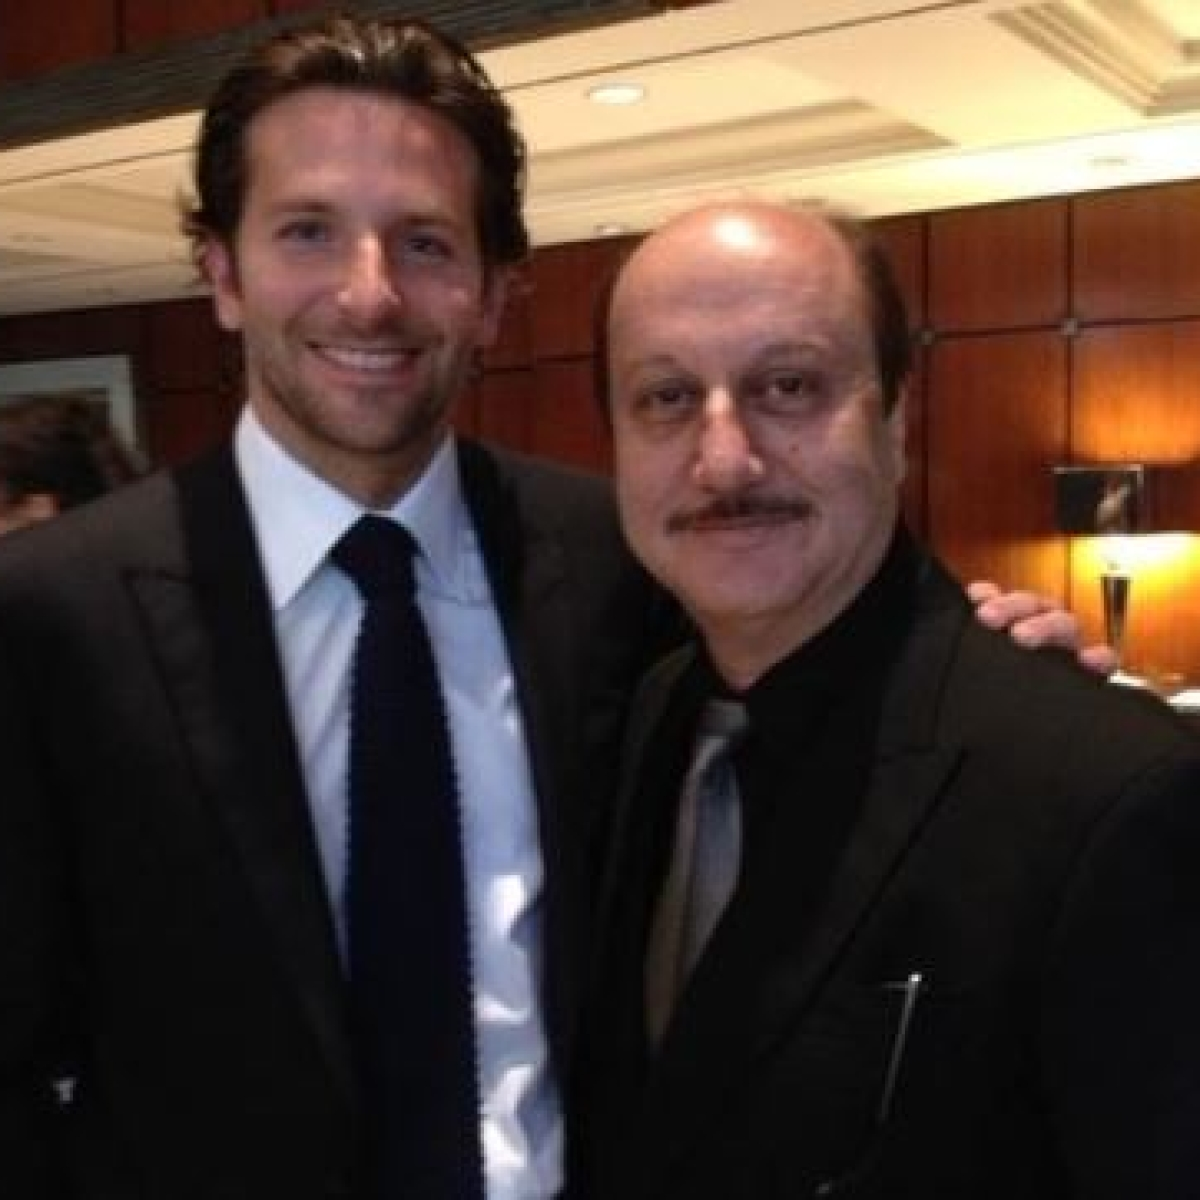 Anupam Kher, Bradley Cooper's never-seen-before throwback video is taking the internet by storm